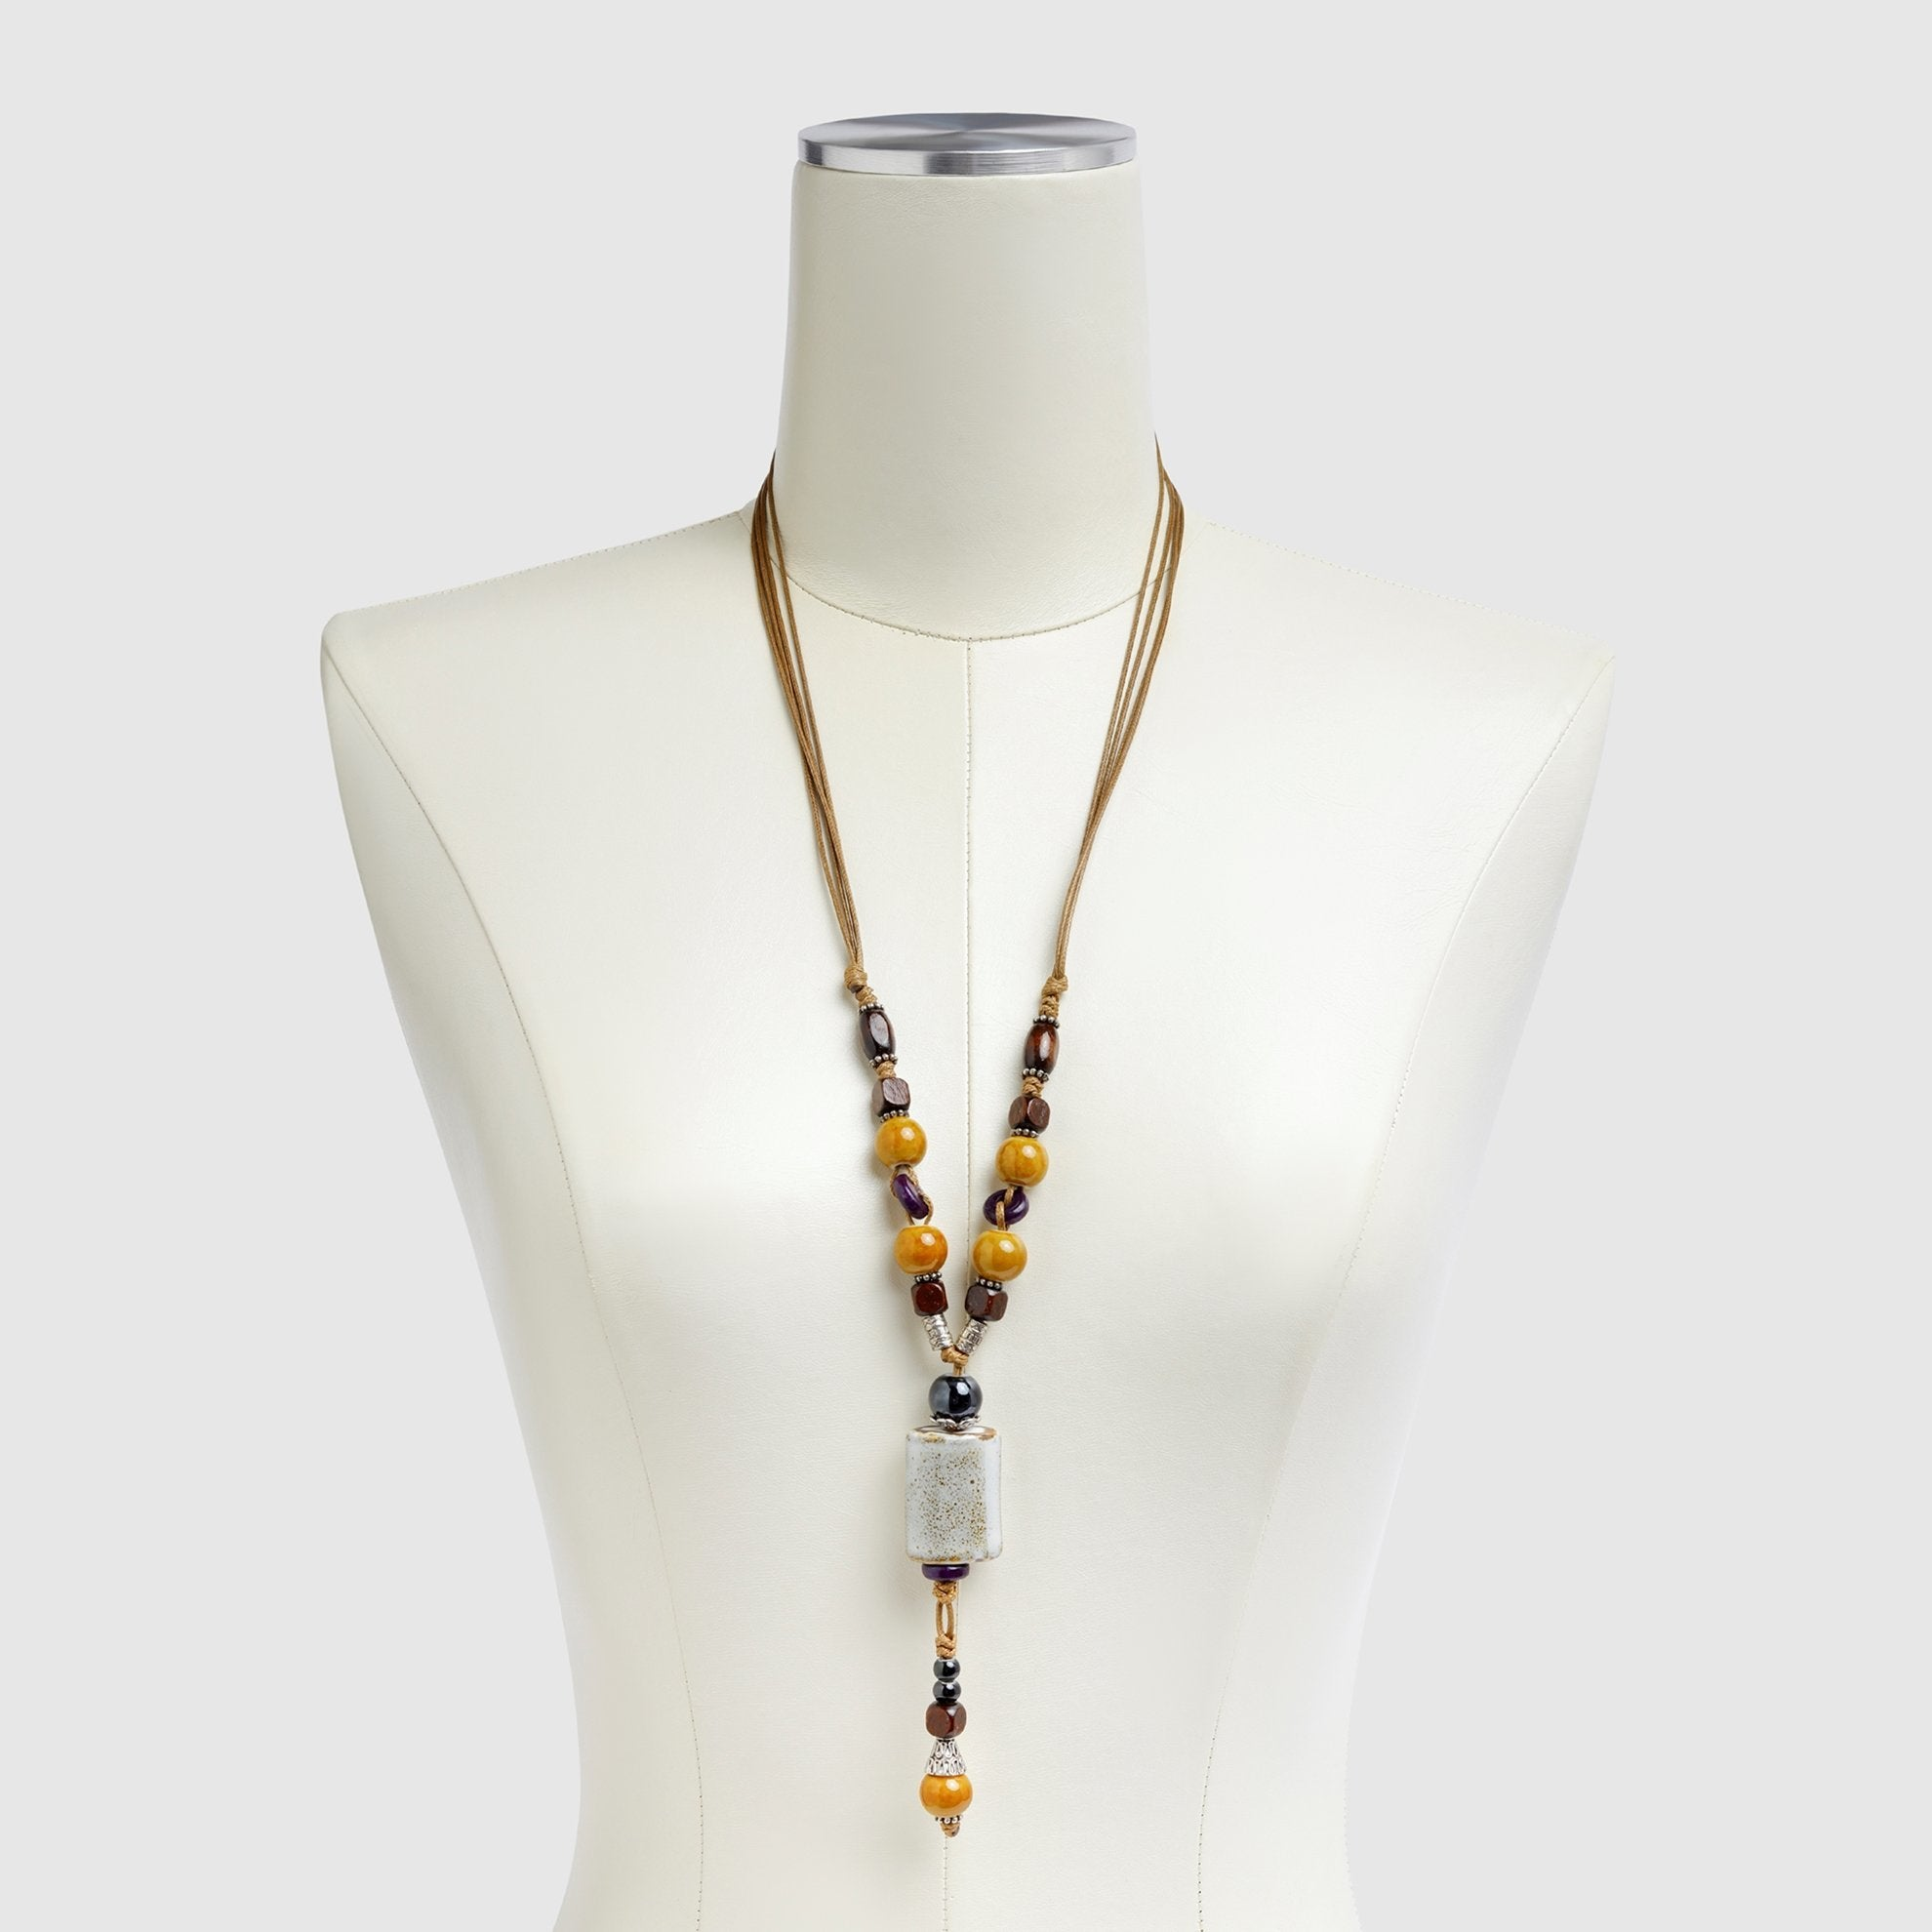 Wood Beaded Necklace on Dress Form